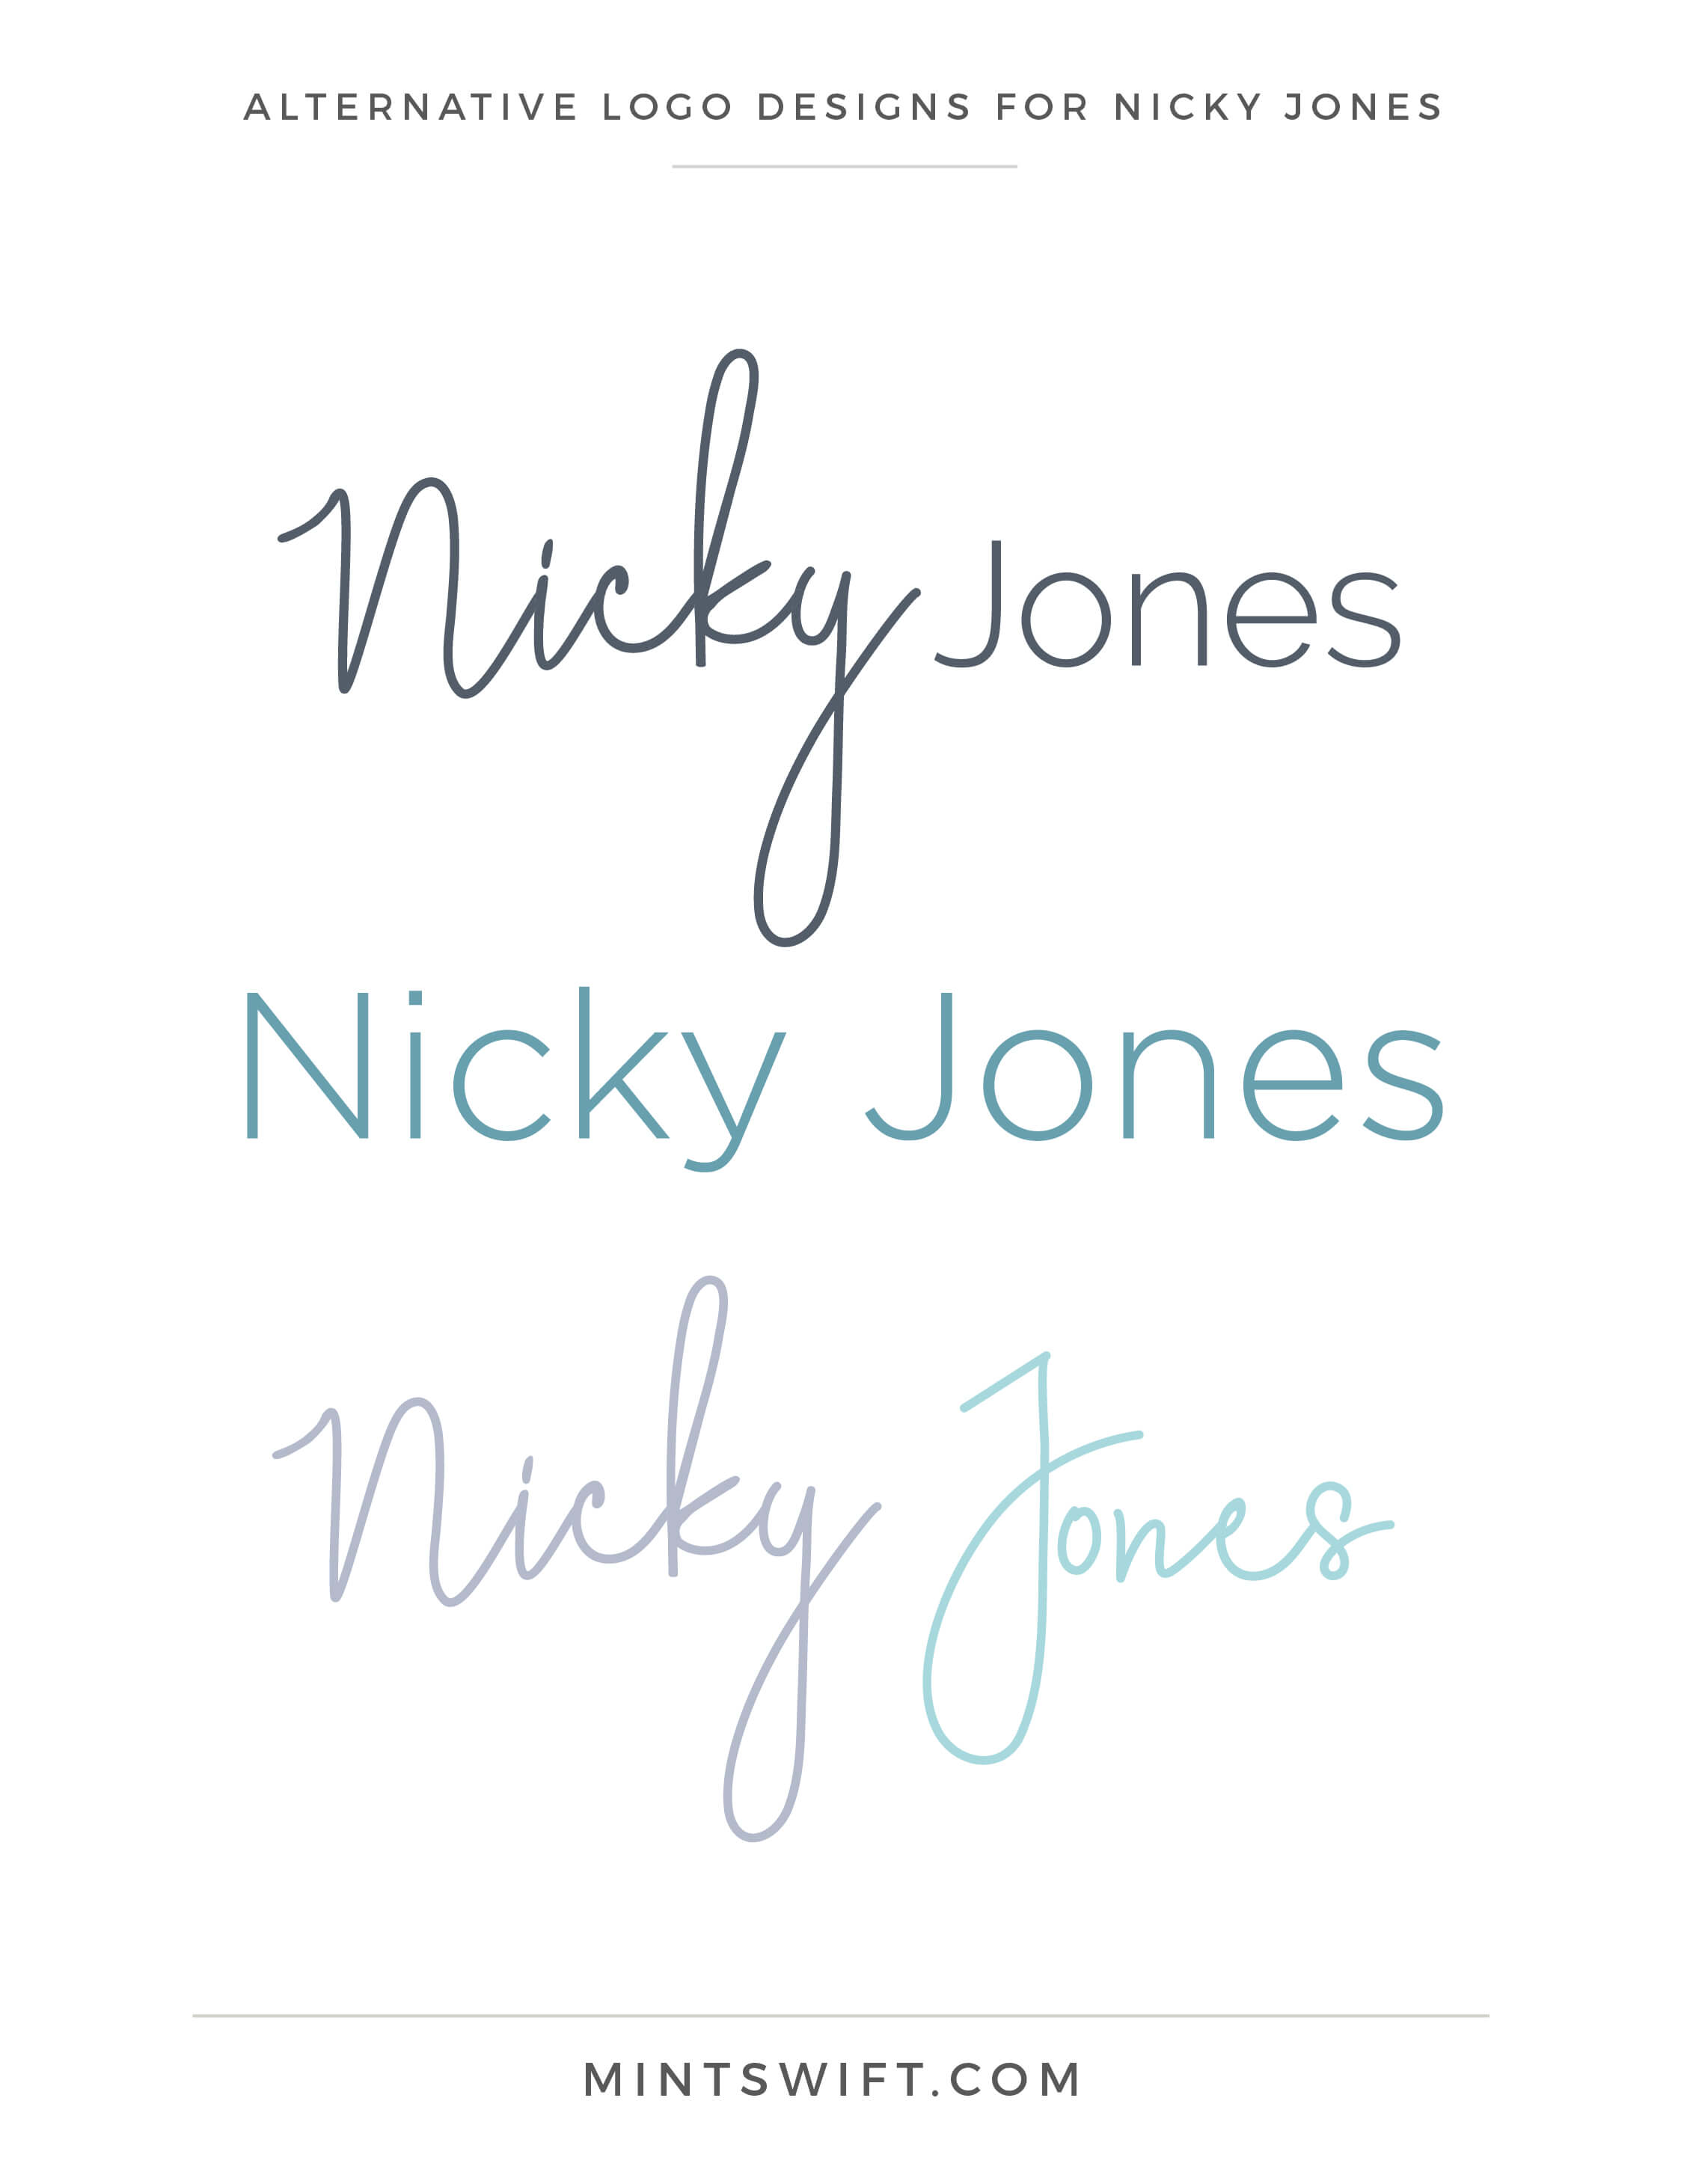 Nicky Jones - Alternative Logo Designs - Brand Design Package - MintSwift